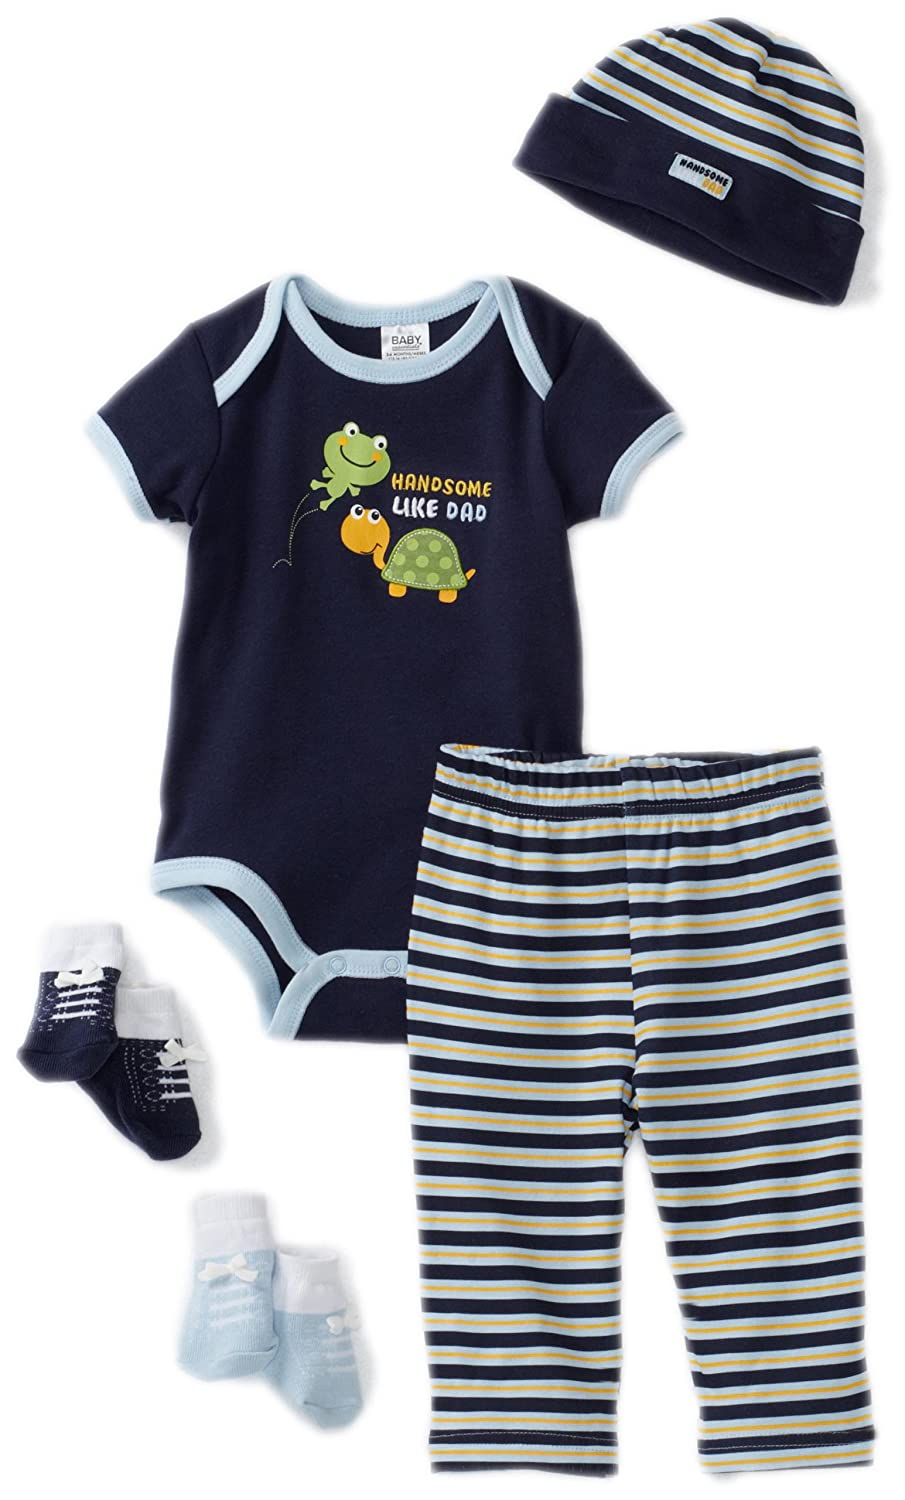 Sale Baby s Clothing Baby Clothing Baby Essentials Baby